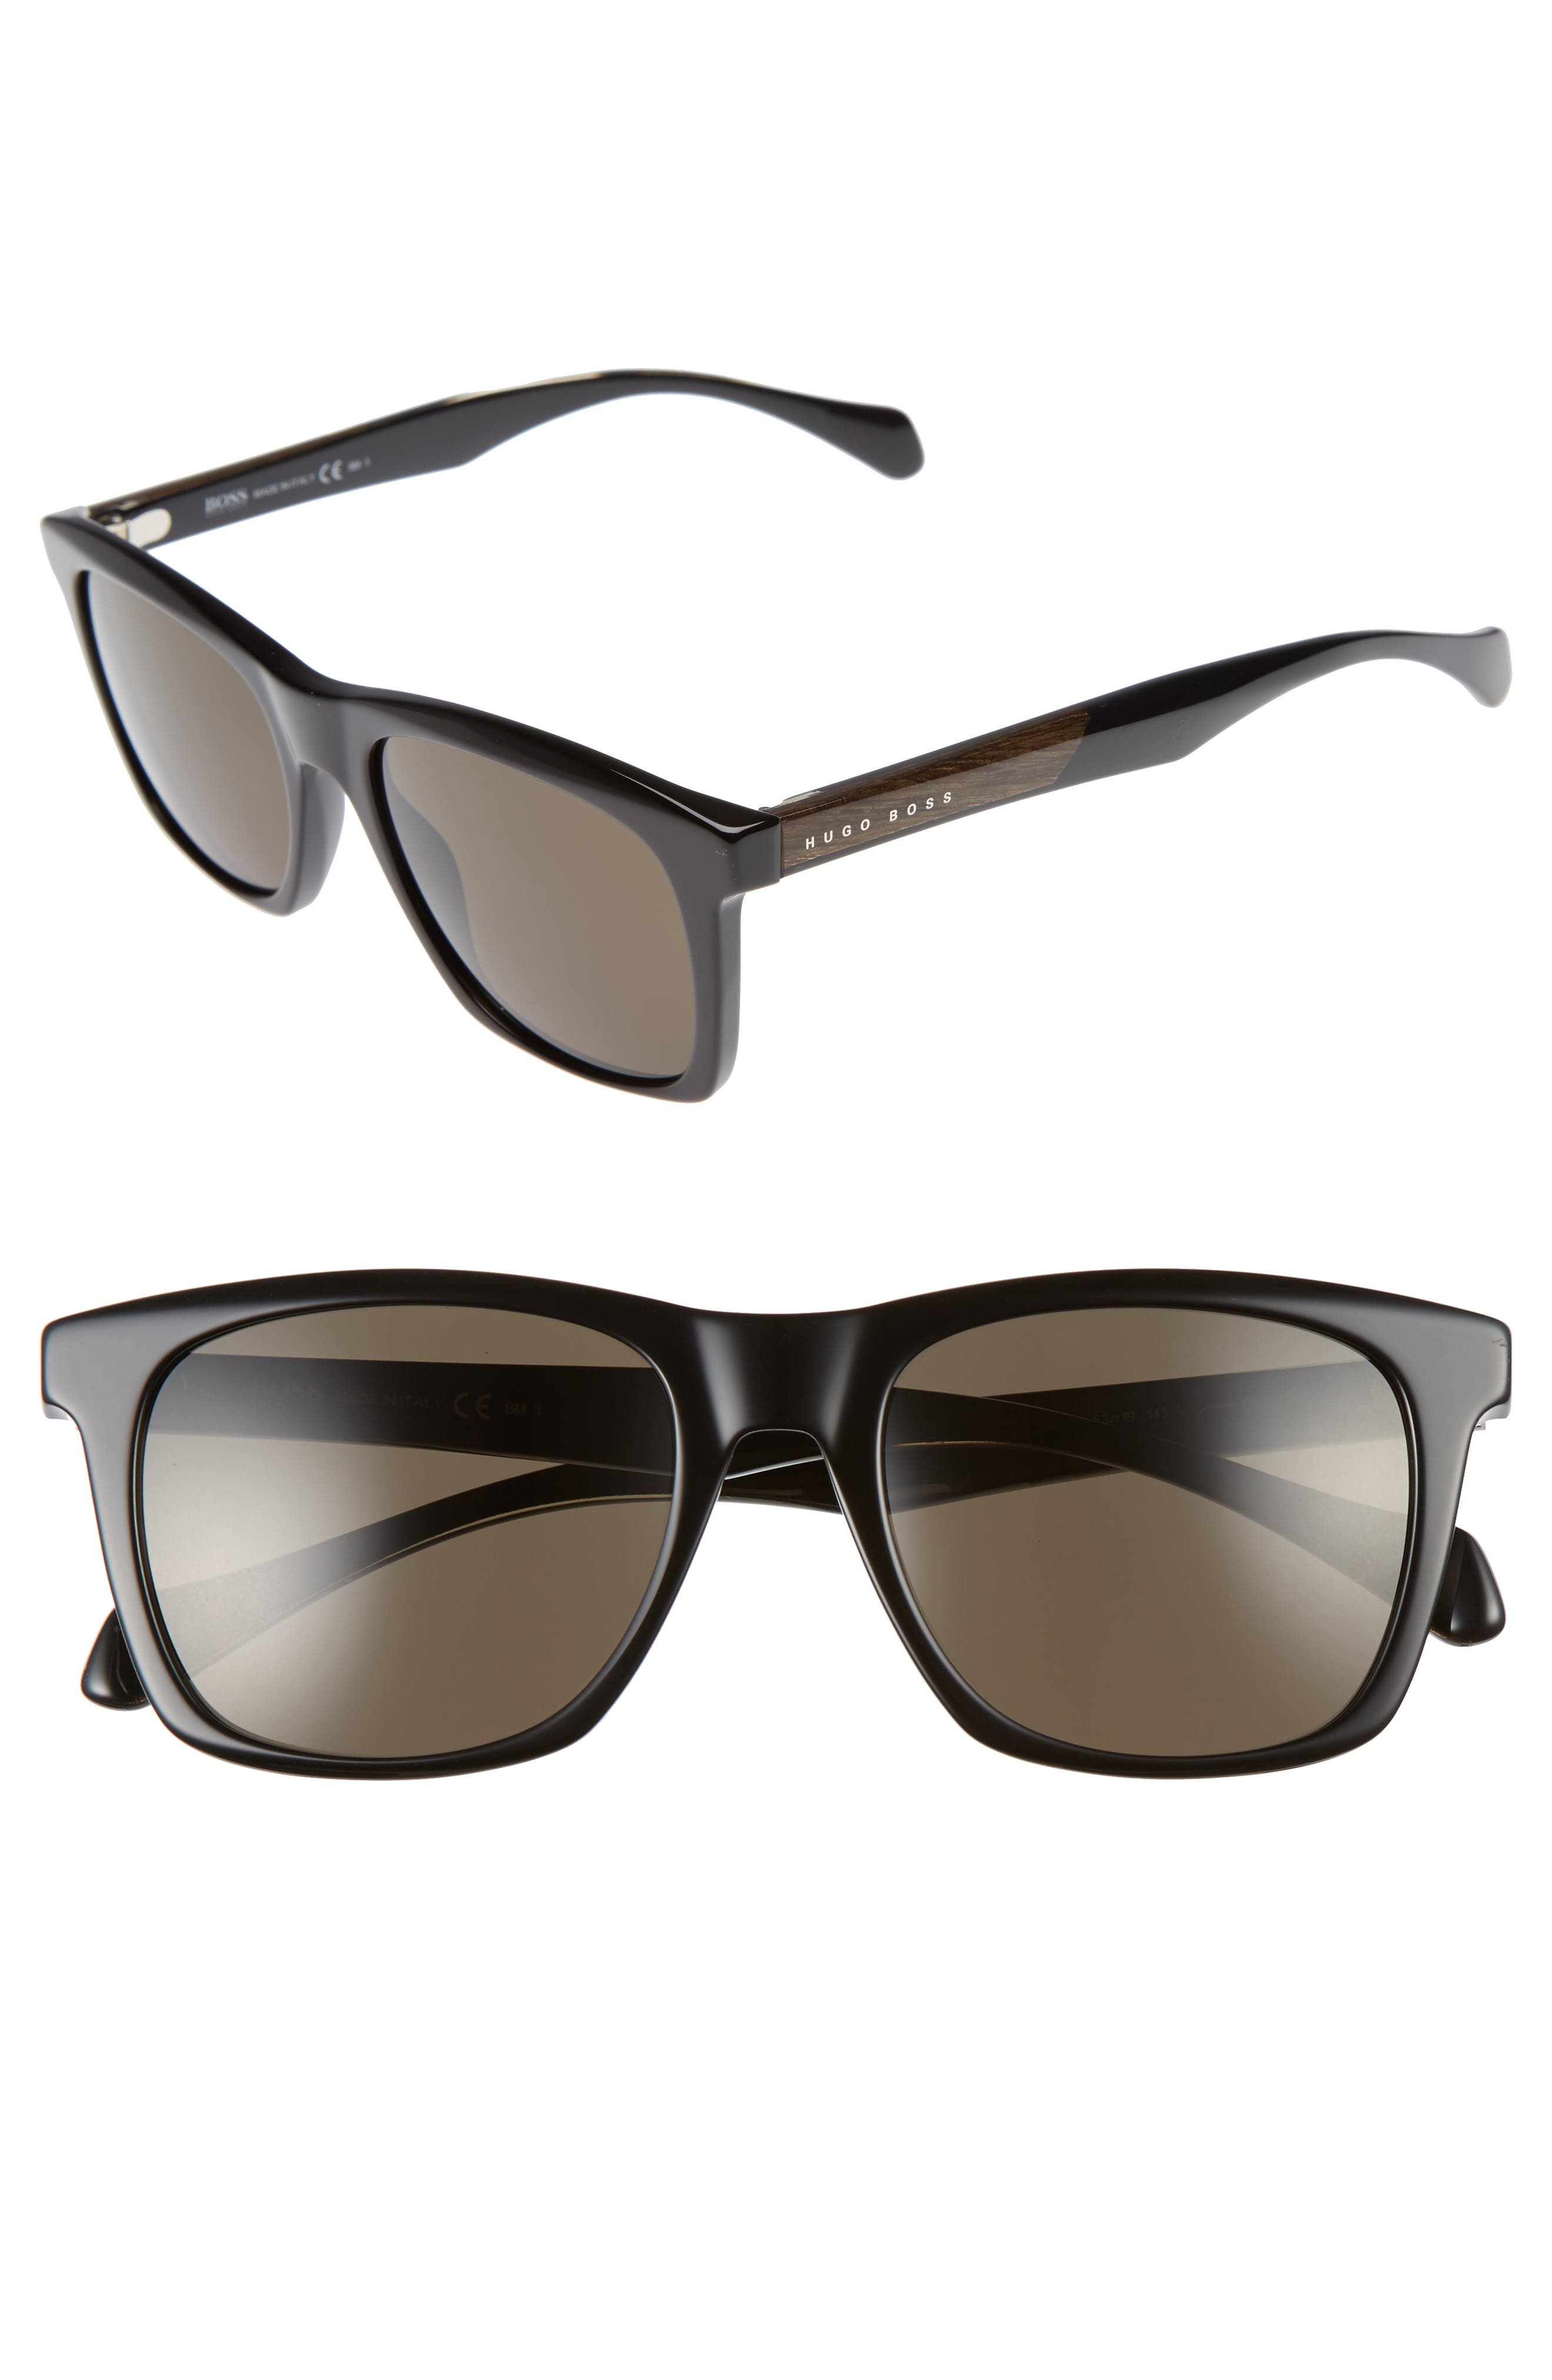 Main Image - BOSS 53mm Sunglasses